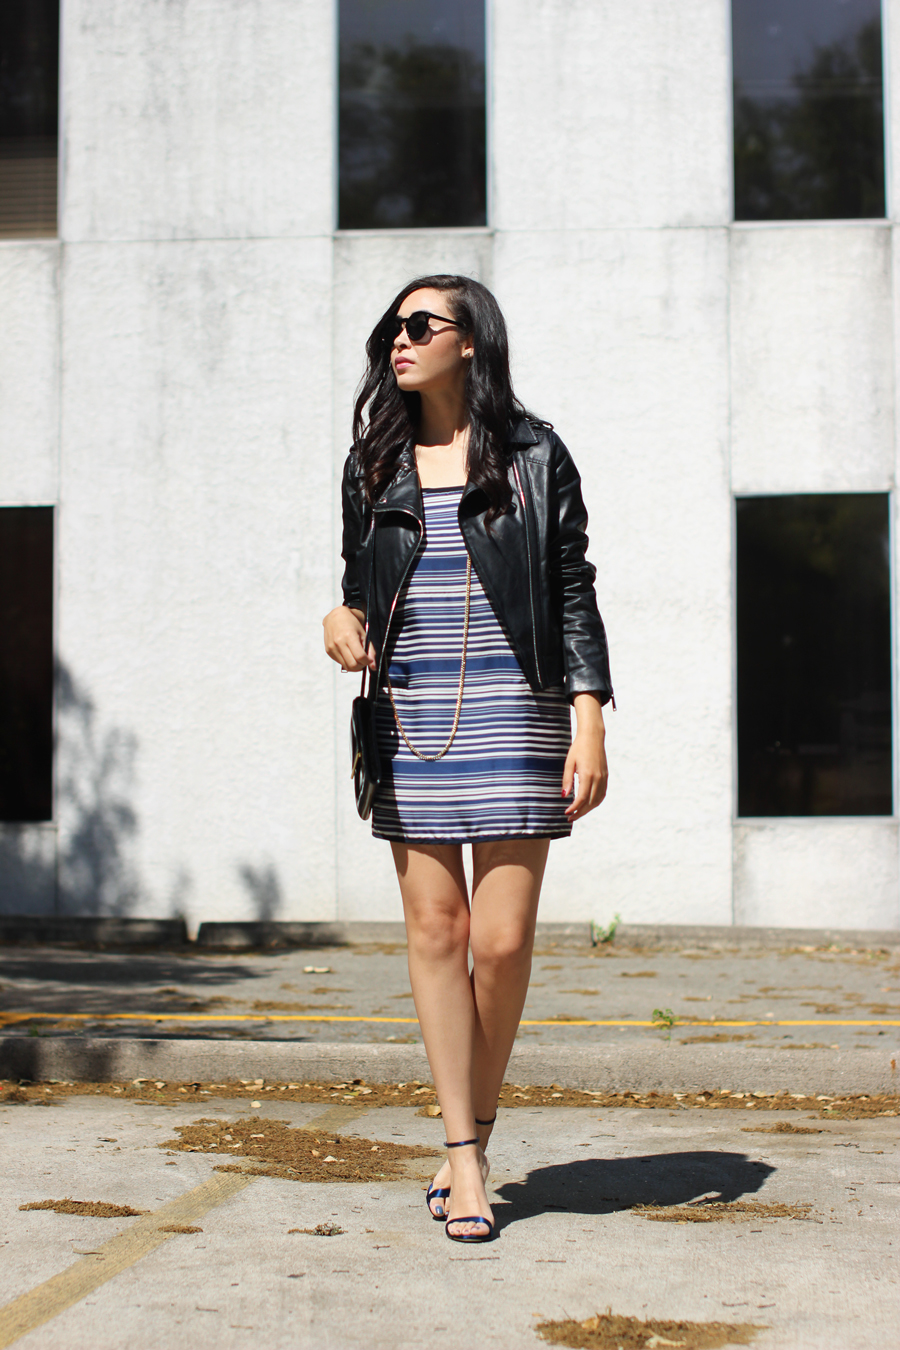 FTT-STRIPED-DRESS-LEATHER-JACKET-BCBG-AUSTIN-BLOGGER-4